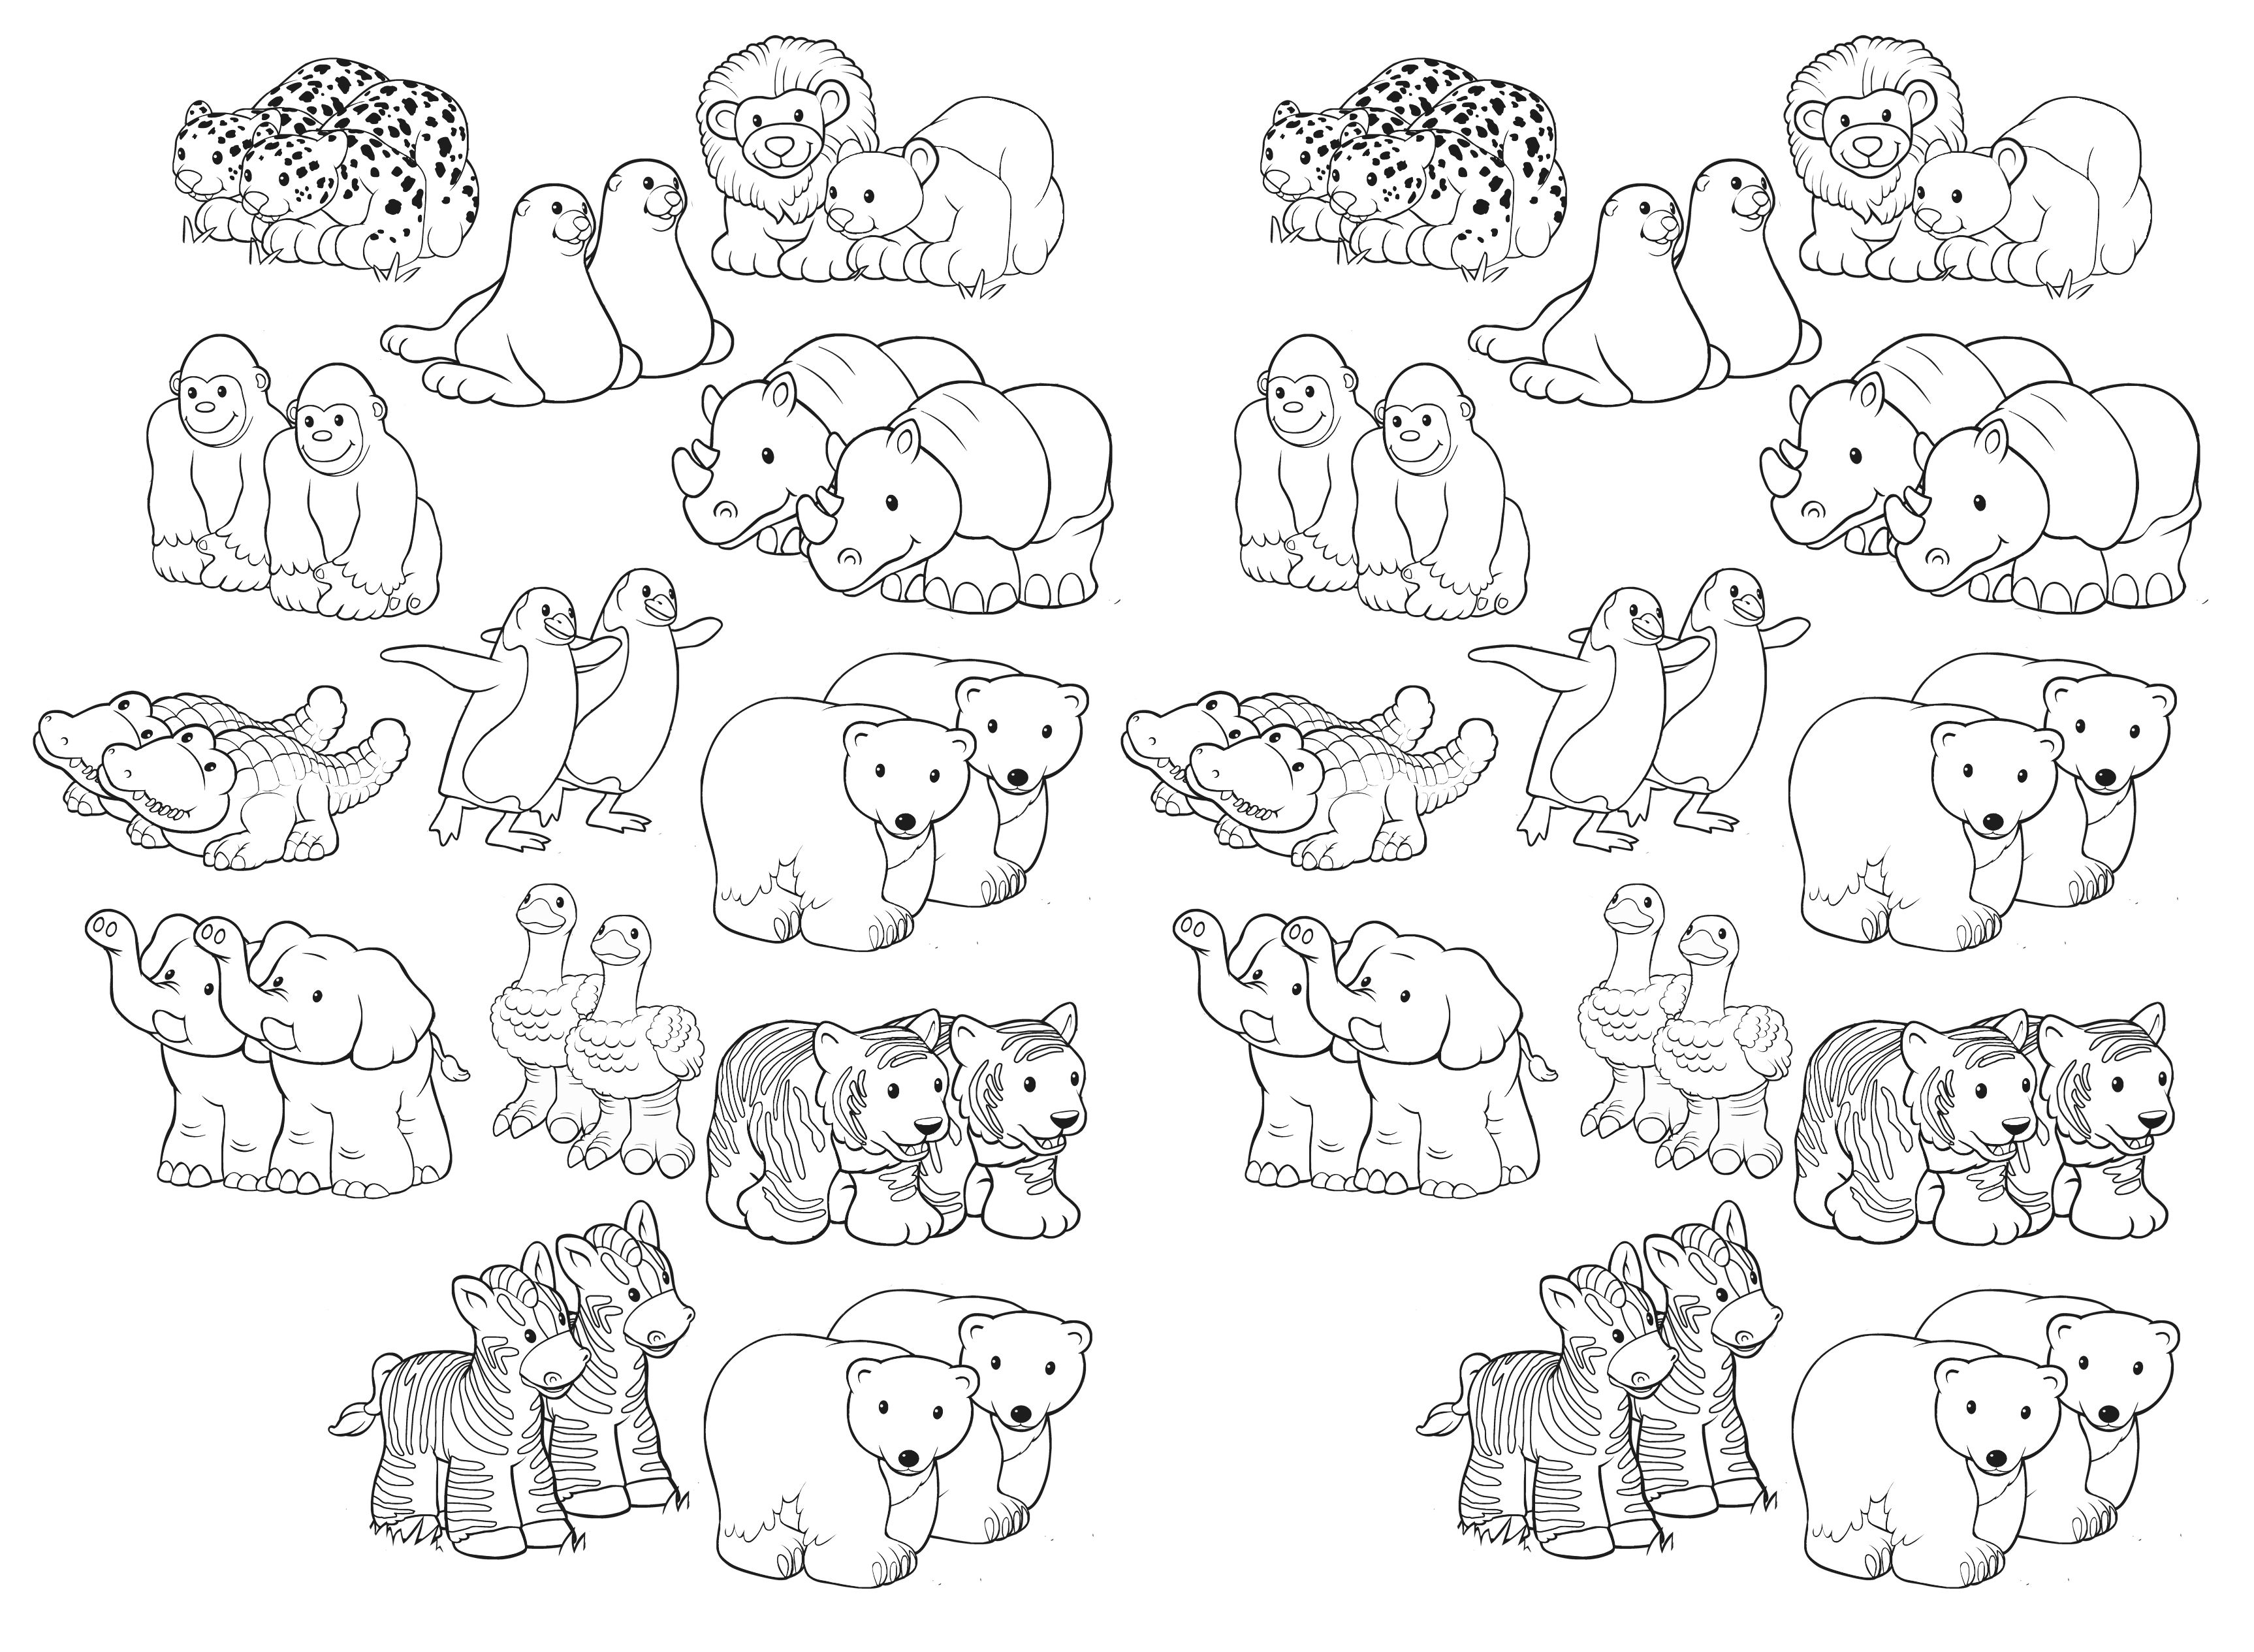 Noahsark animal printable i plan to get my kids to color then cut them out and then they can put theminto an origami paper boat